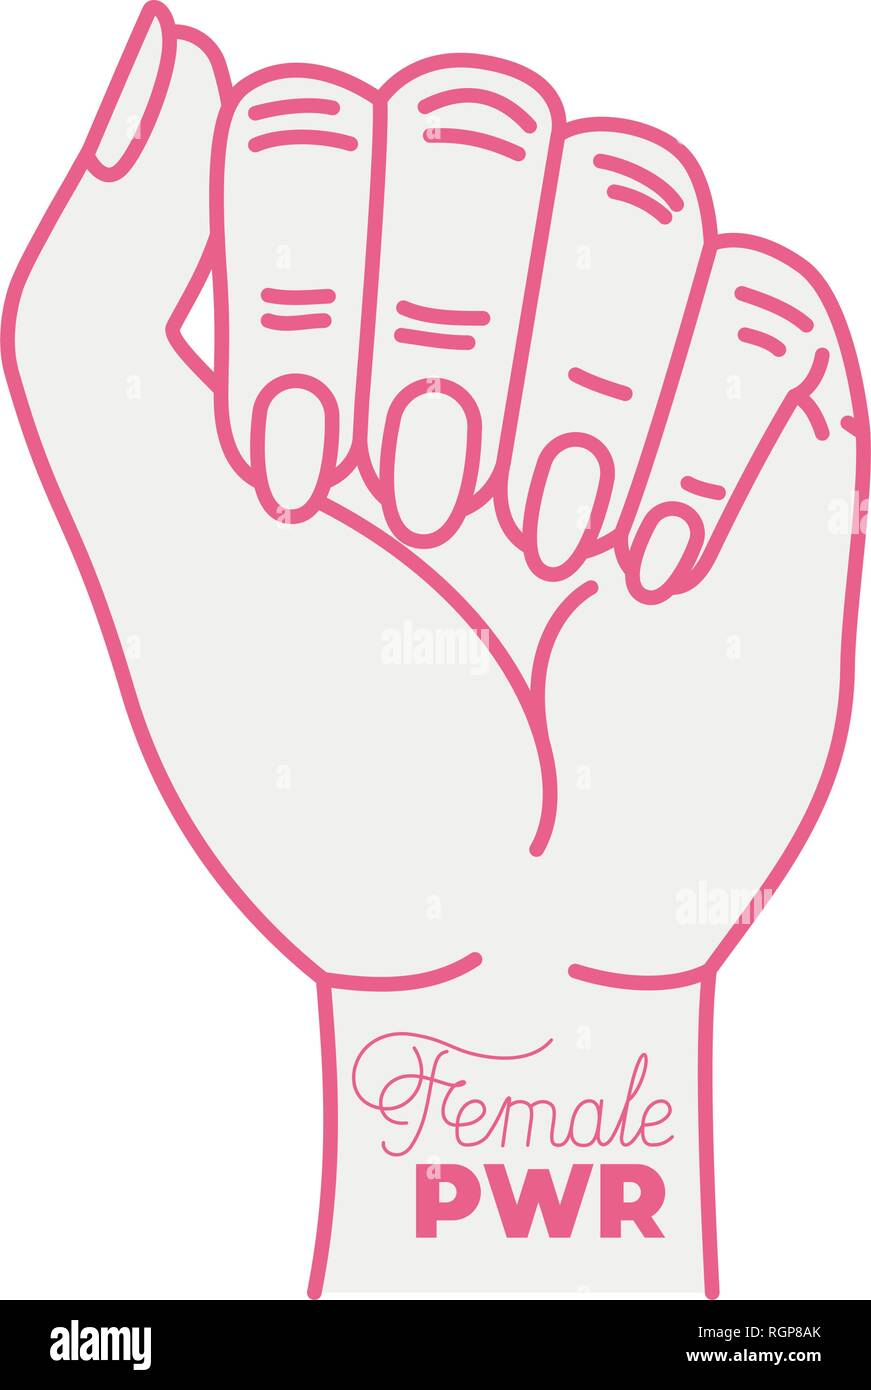 girl power label with hand in fight signal icons - Stock Image